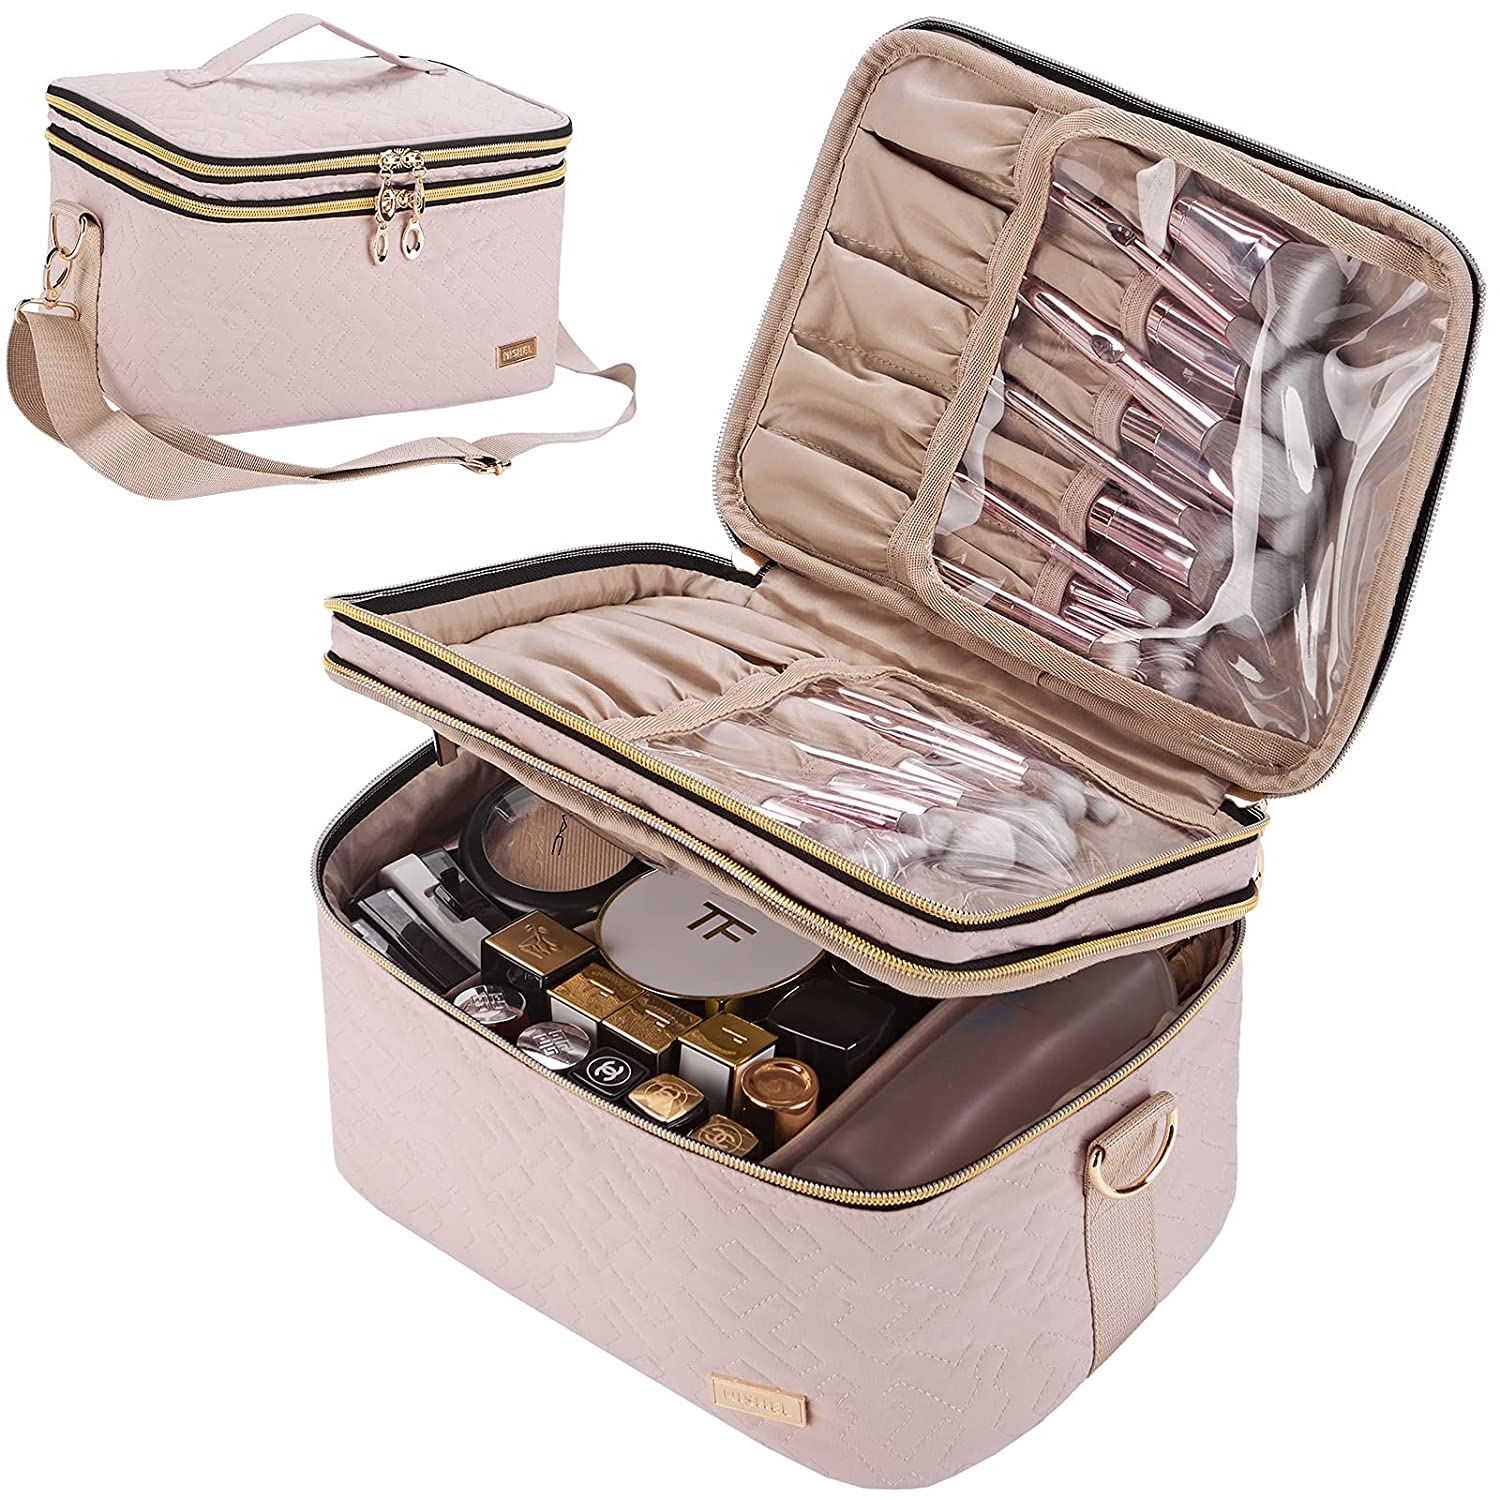 NISHEL Double Layer Travel Makeup Bag with Strap, Large Cosmetic Case Organizer Fits Bottles Vertically, Top Layer for Brushes, Tweezers, Eyeliner, Pink